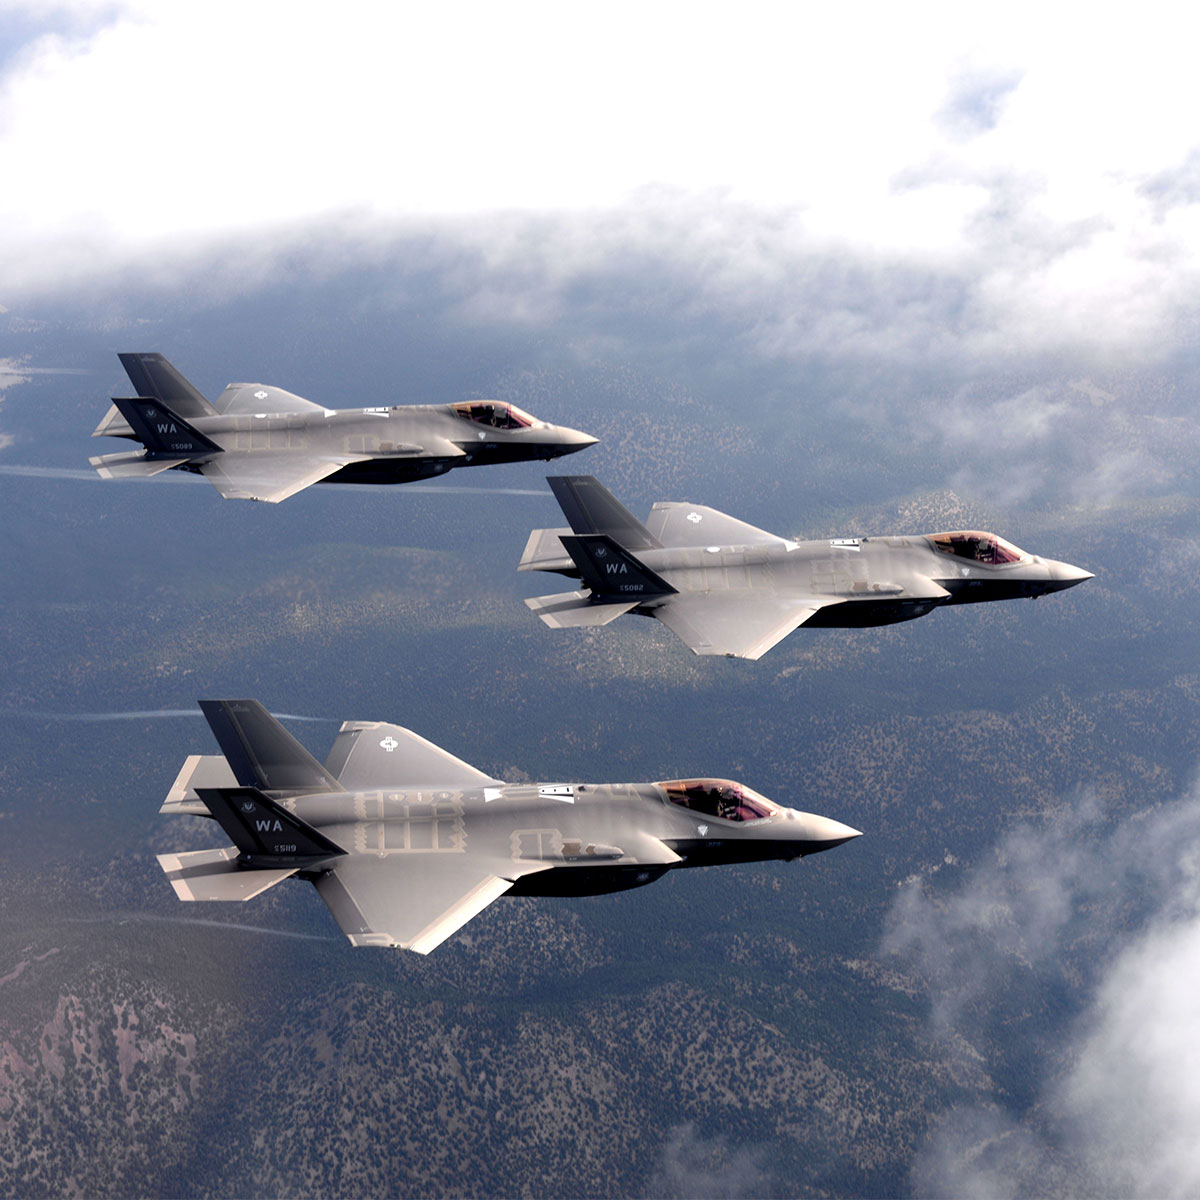 F-35 Lightning II, assigned to the 6th Weapons Squadron, at Nellis Air Force Base, Nevada, and F-22 Raptors fighter jets, assigned to the 433rd Weapons Squadron, at Nellis AFB, Nevada, fly in formation over the Nevada Test and Training Range.